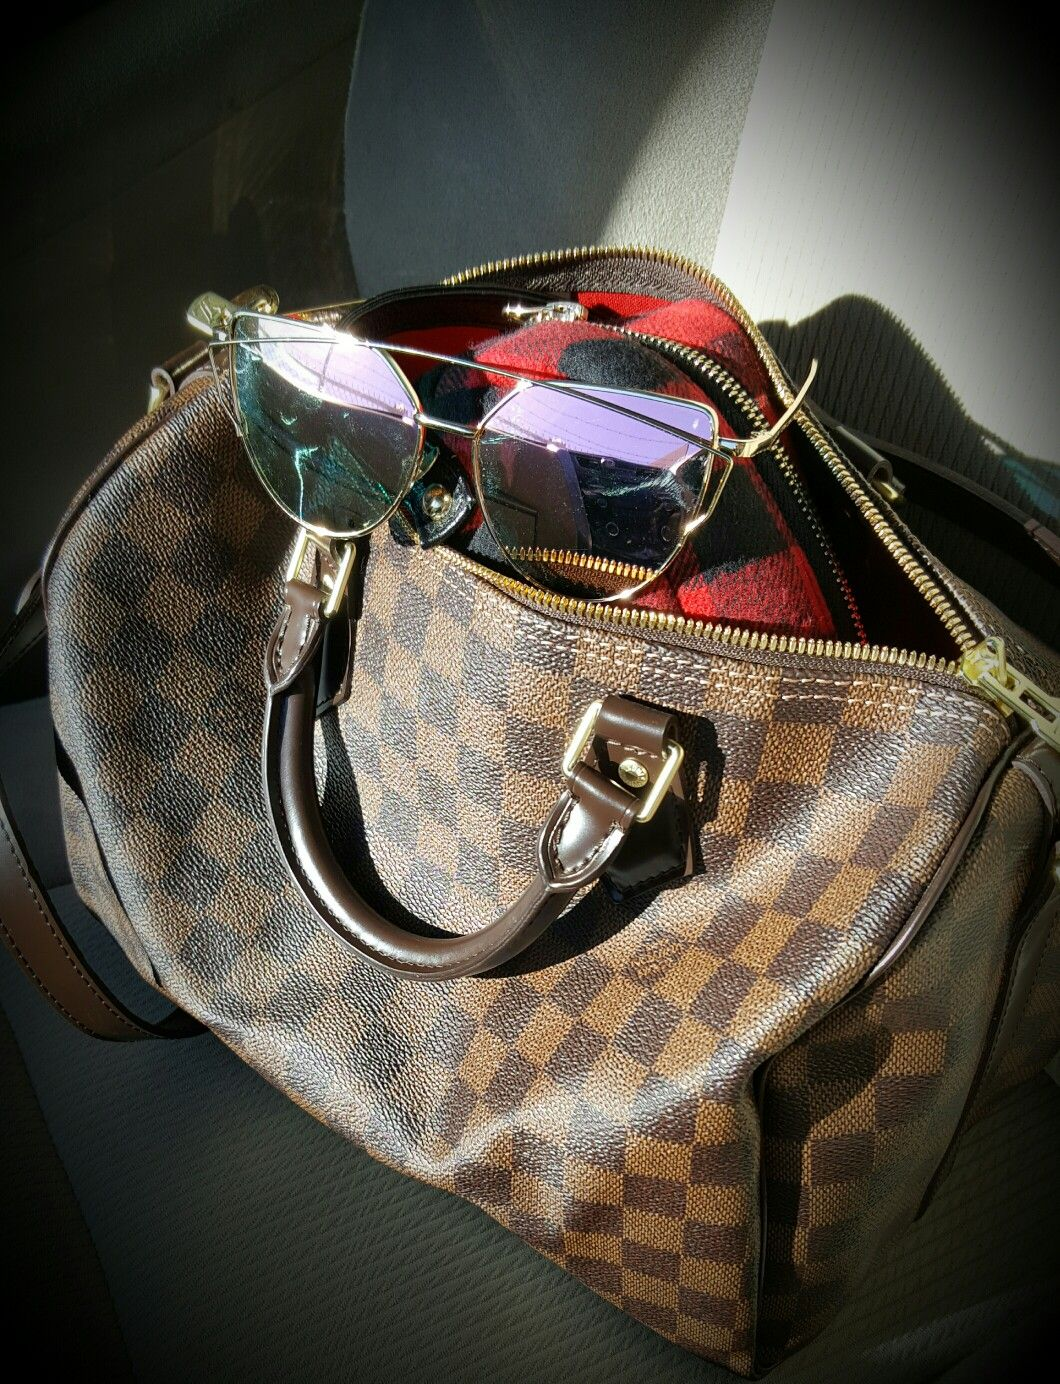 af421ed45cc8 louis vuitton damier ebene speedy 30 bandouliere bought from poshmark